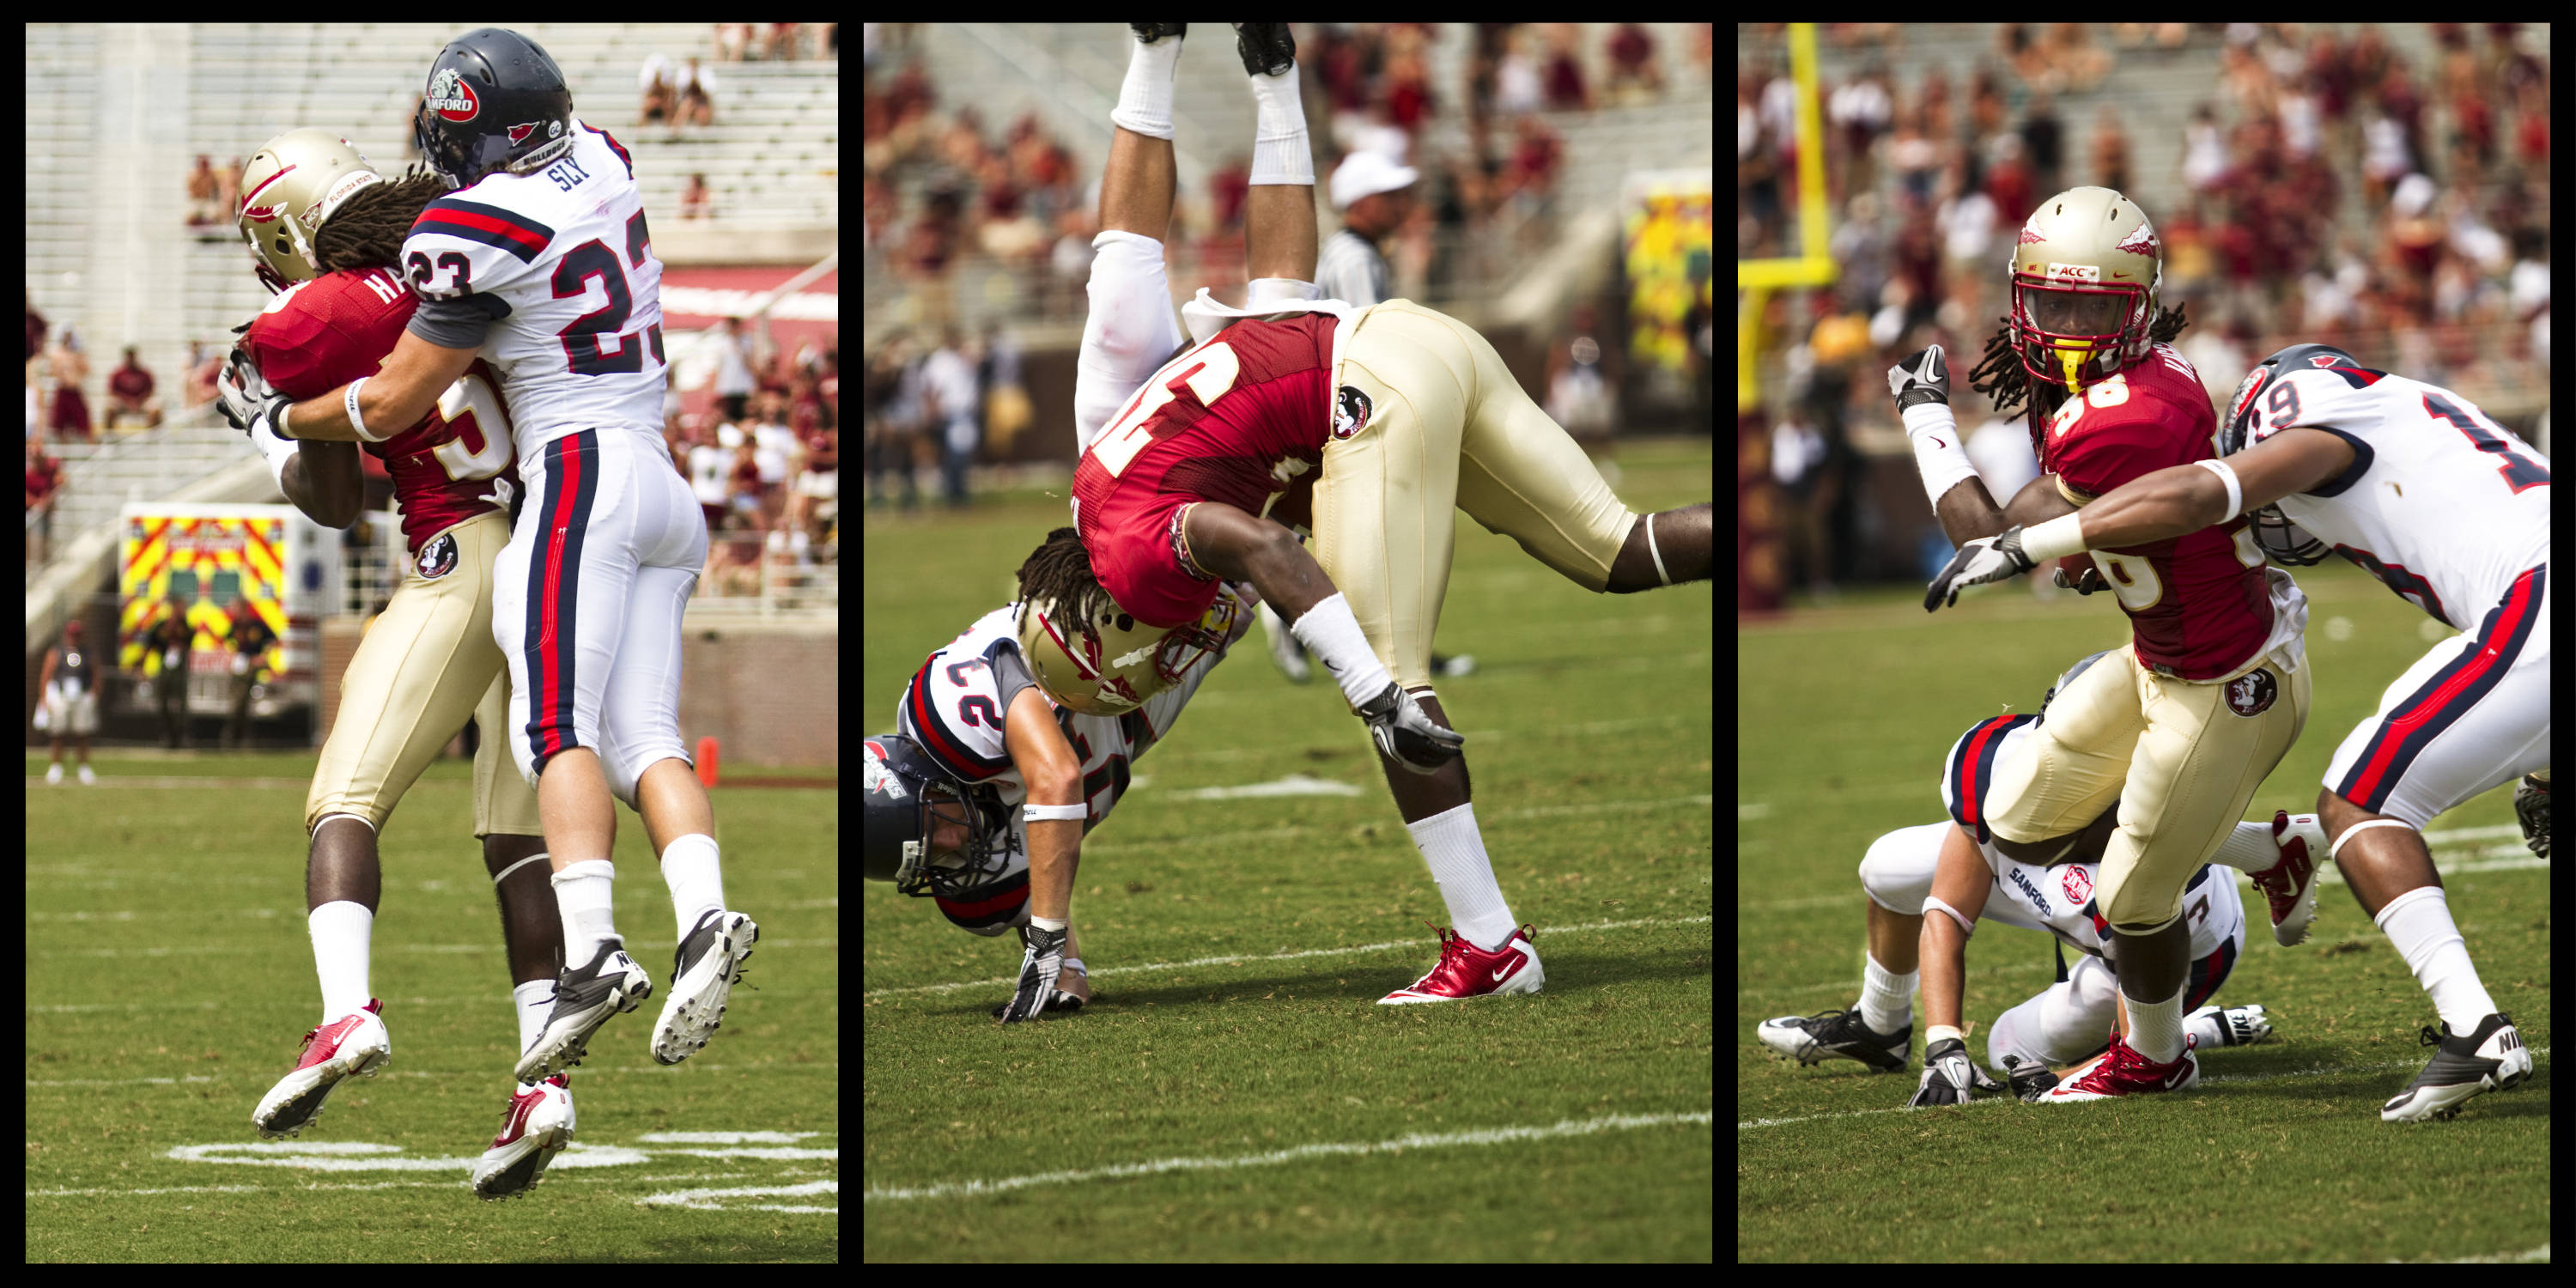 Jared Haggins (36) catches a pass with a Samford defender on his back, throws off the defender, then breaks a tackle.